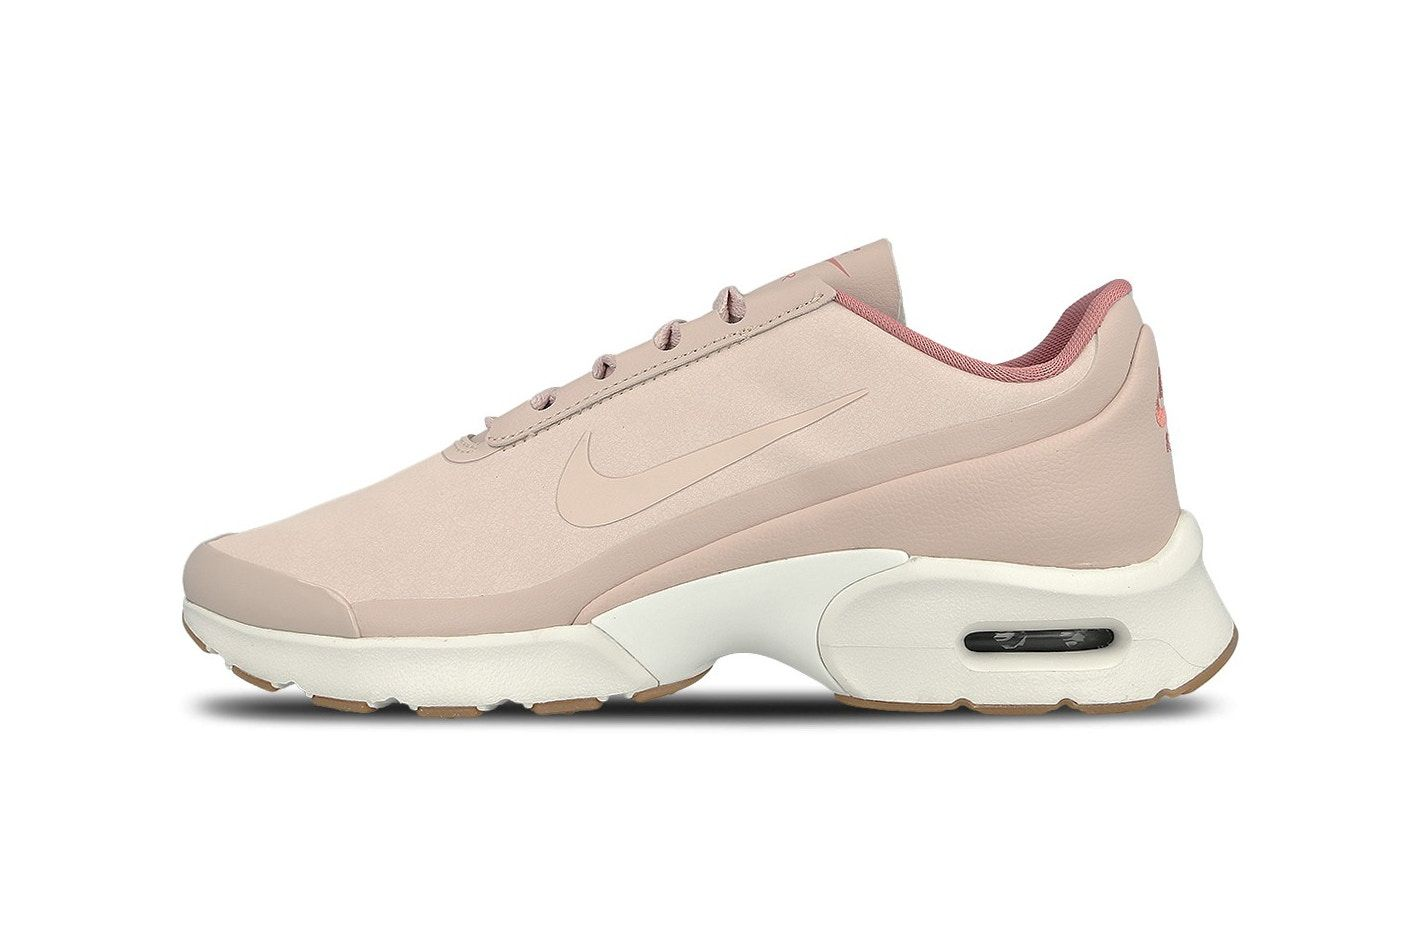 c6f1f4d0e3f2 This Nike Air Max Jewell SE Is So Pink It s Nude Too